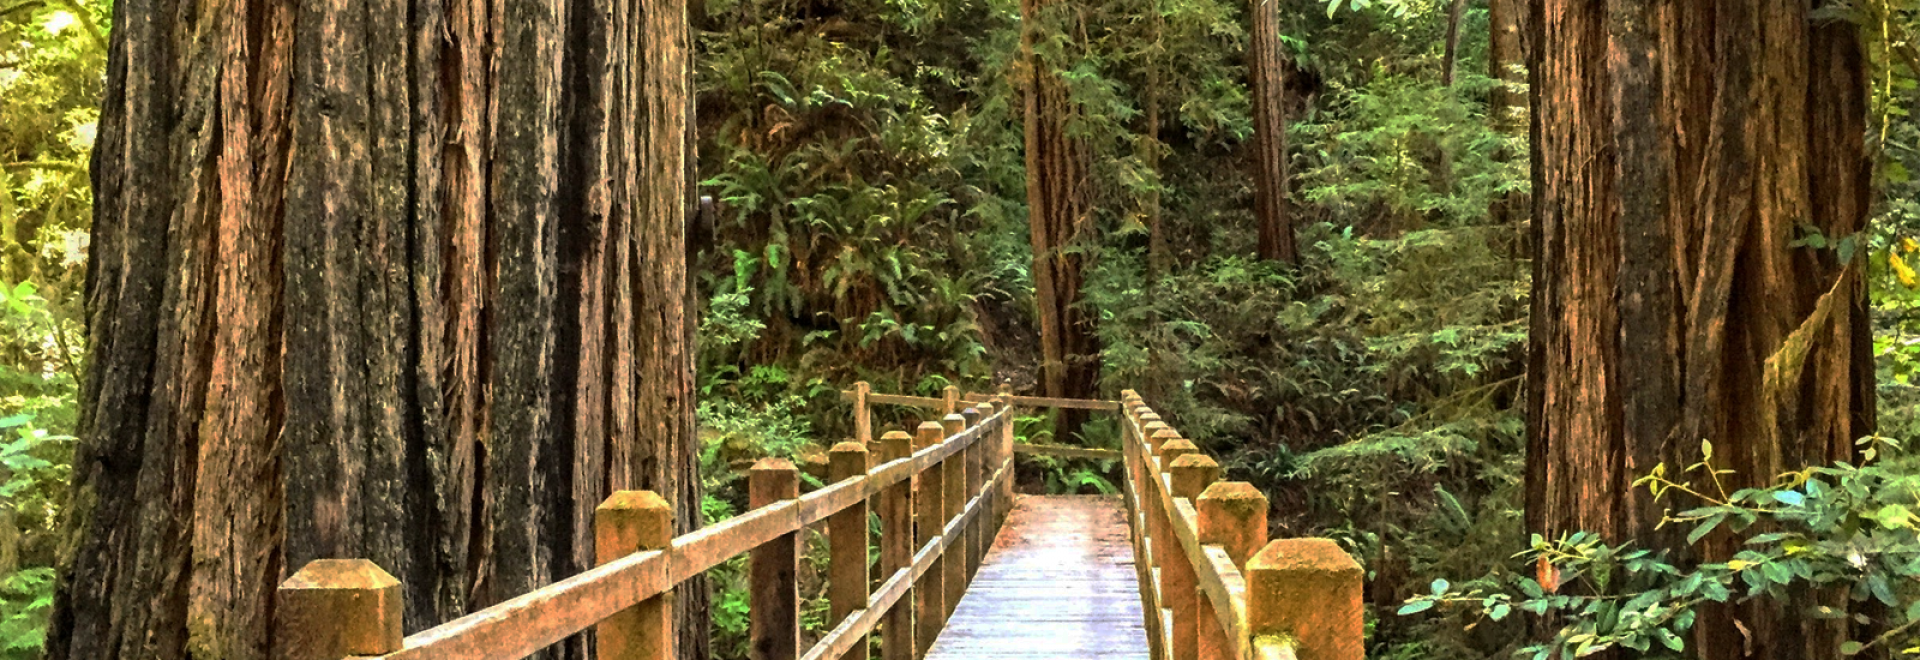 Boardwalk through the redwoods